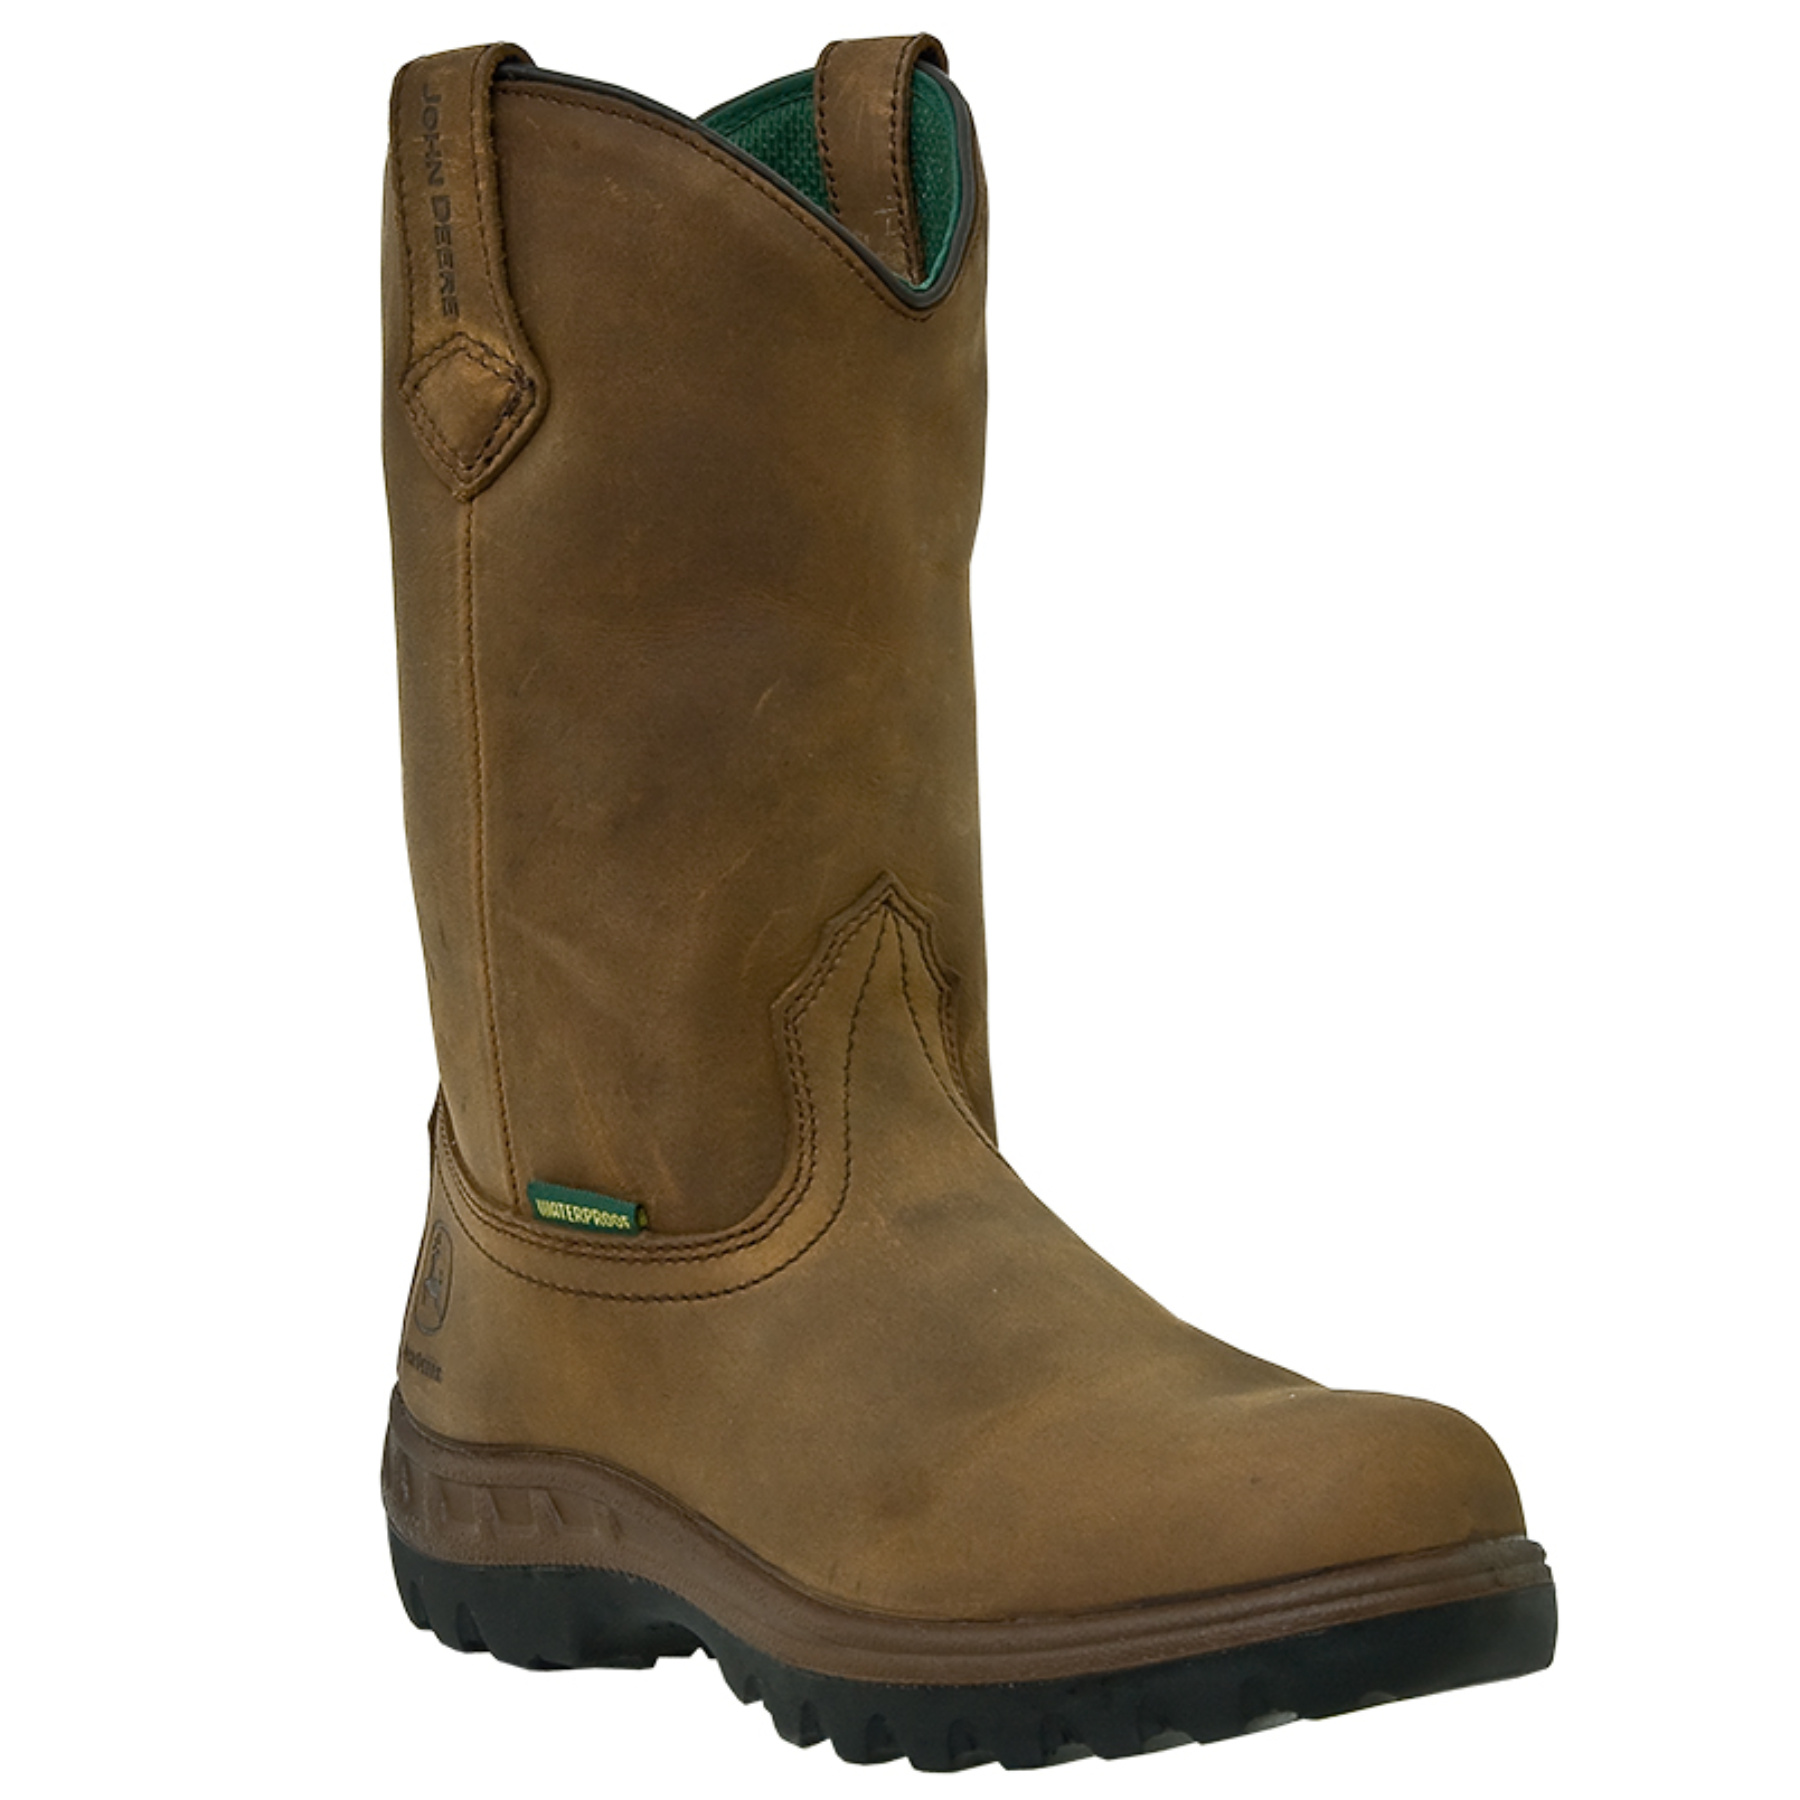 John Deere John Deere Men'S Brown Leather Boots 8 W - Pricefalls.com